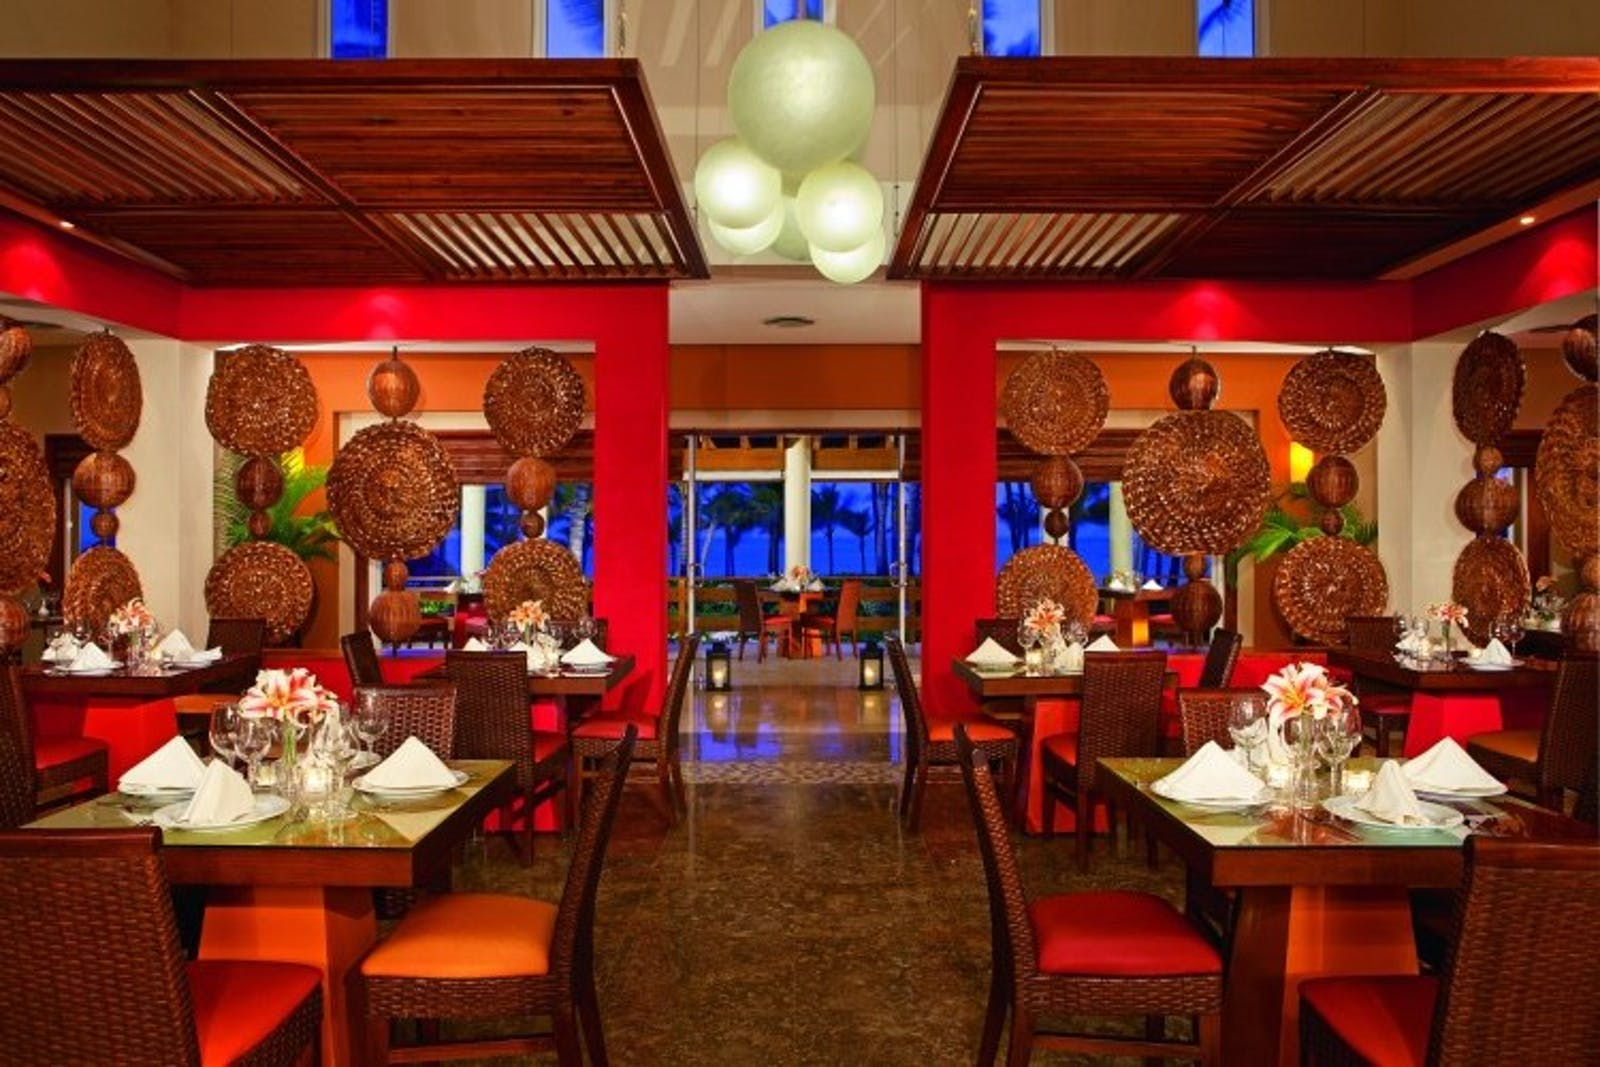 Riviera Restaurant at Secrets Royal Beach Punta Cana, Dominican Republic